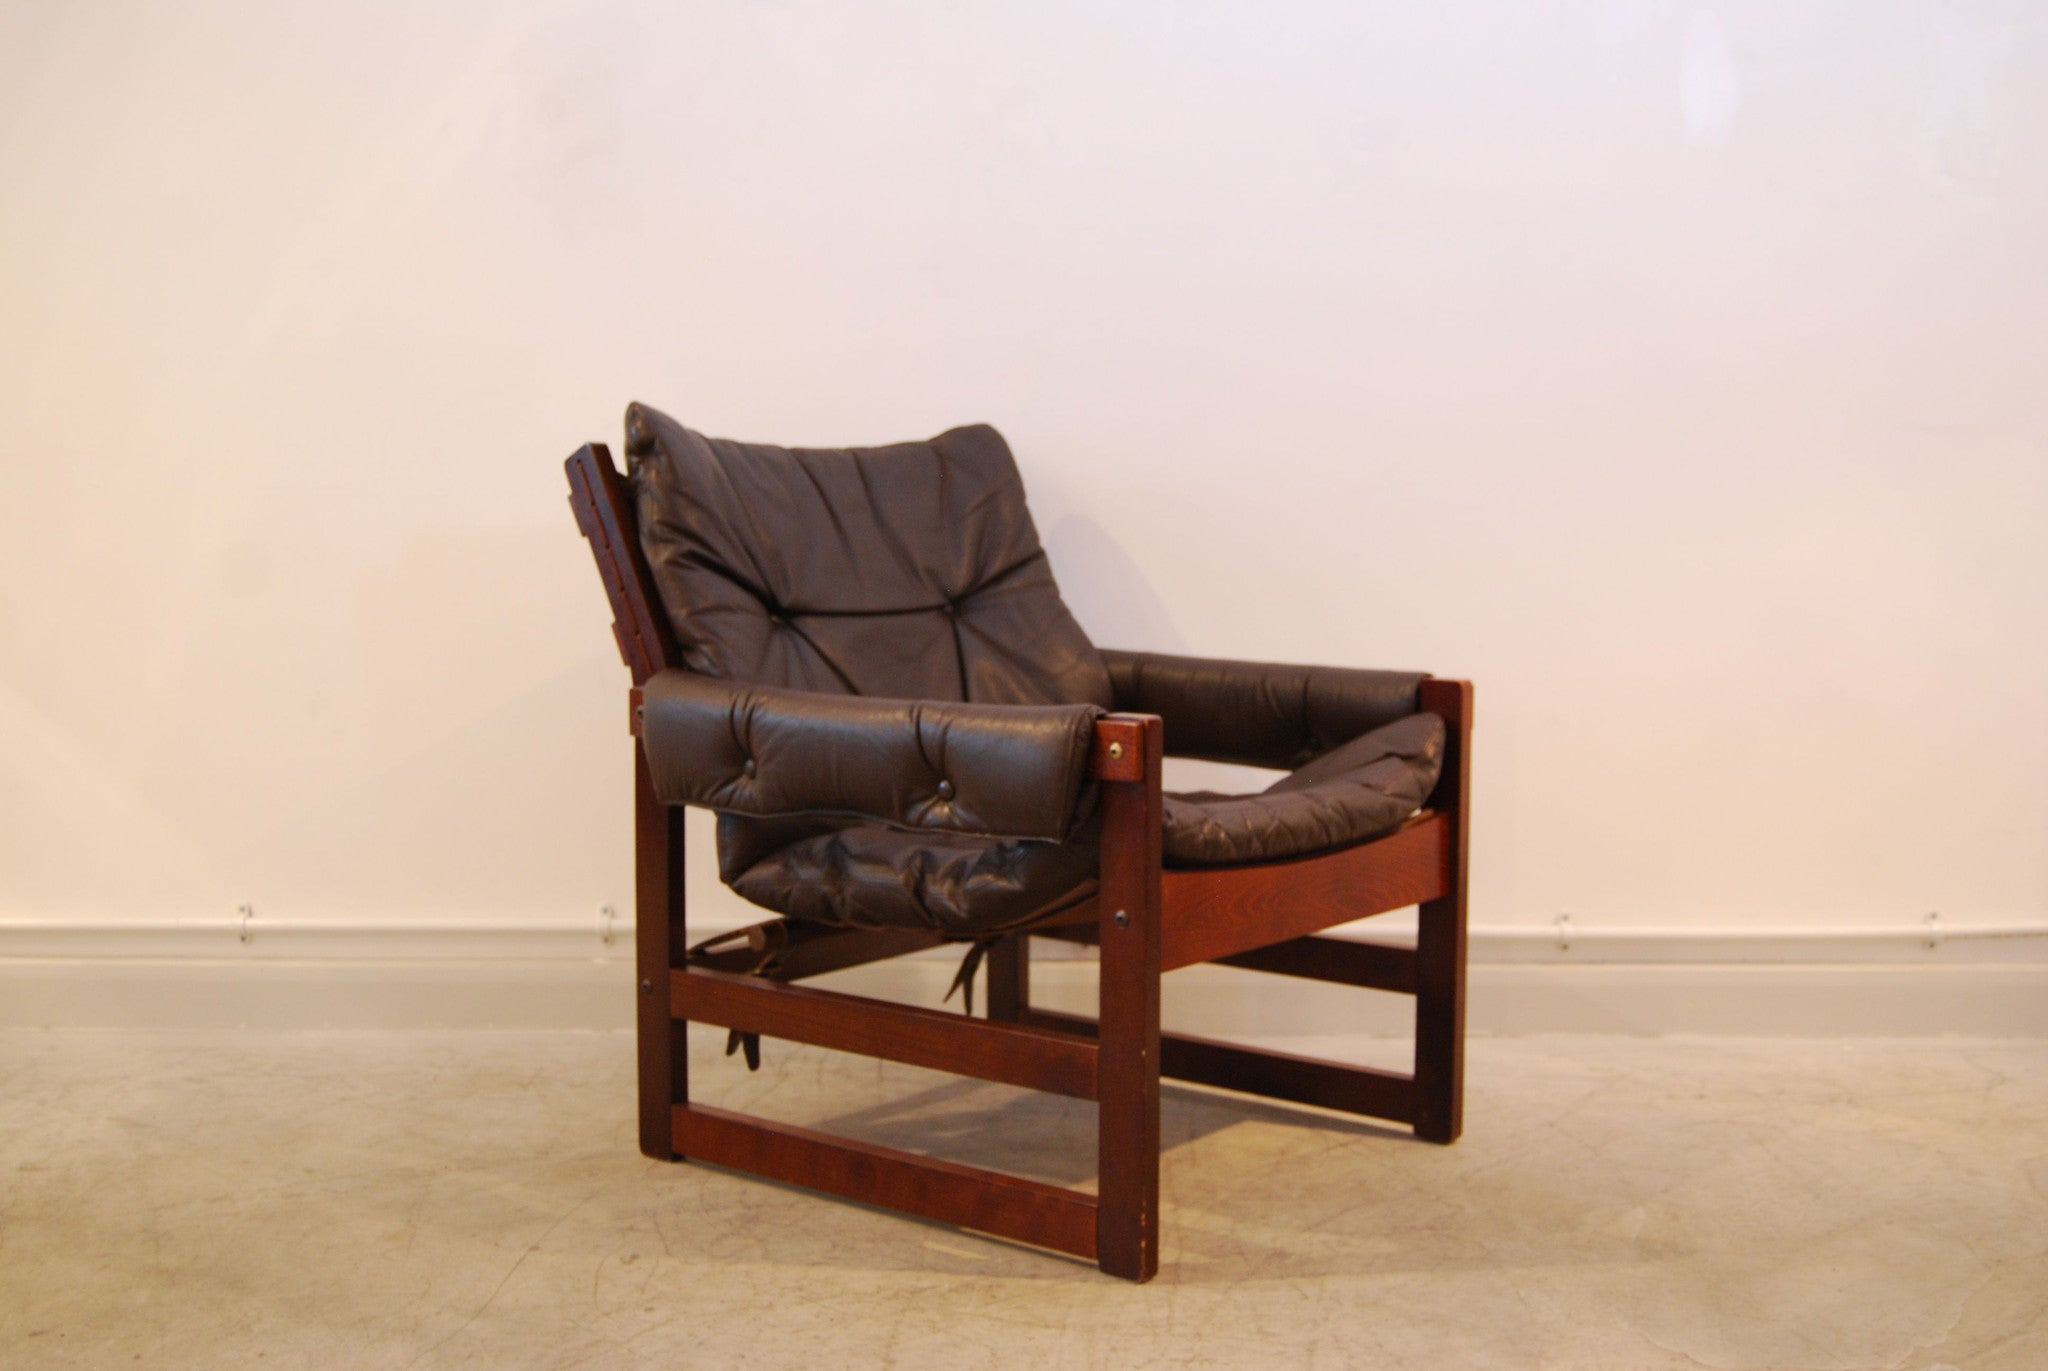 Chase & Sorensen Norwegian lounge chair